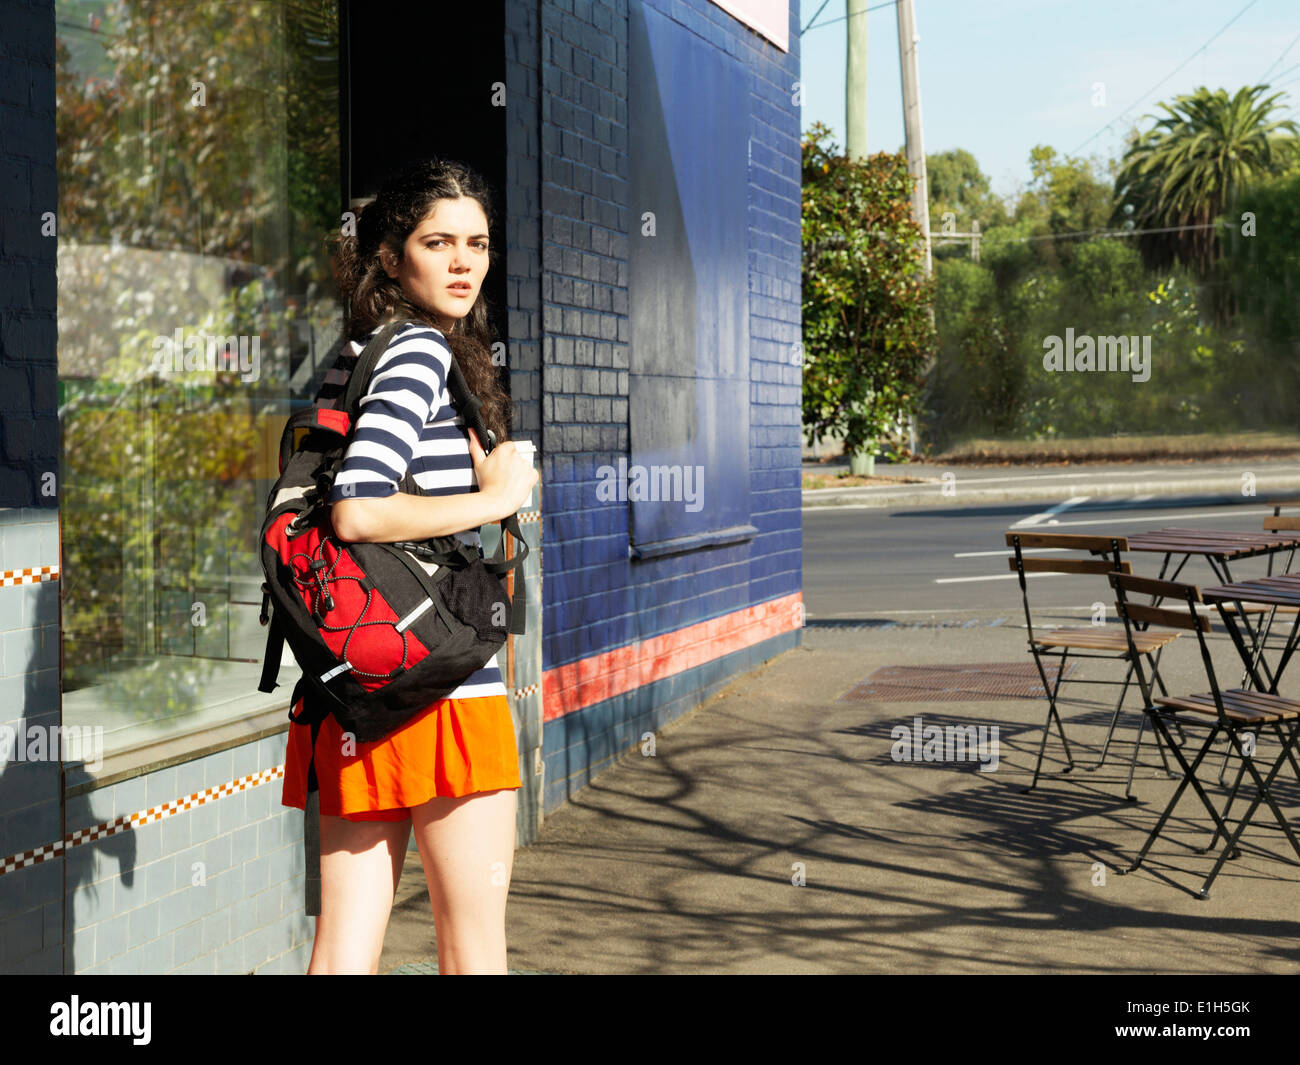 Young woman on street looking over her shoulder - Stock Image